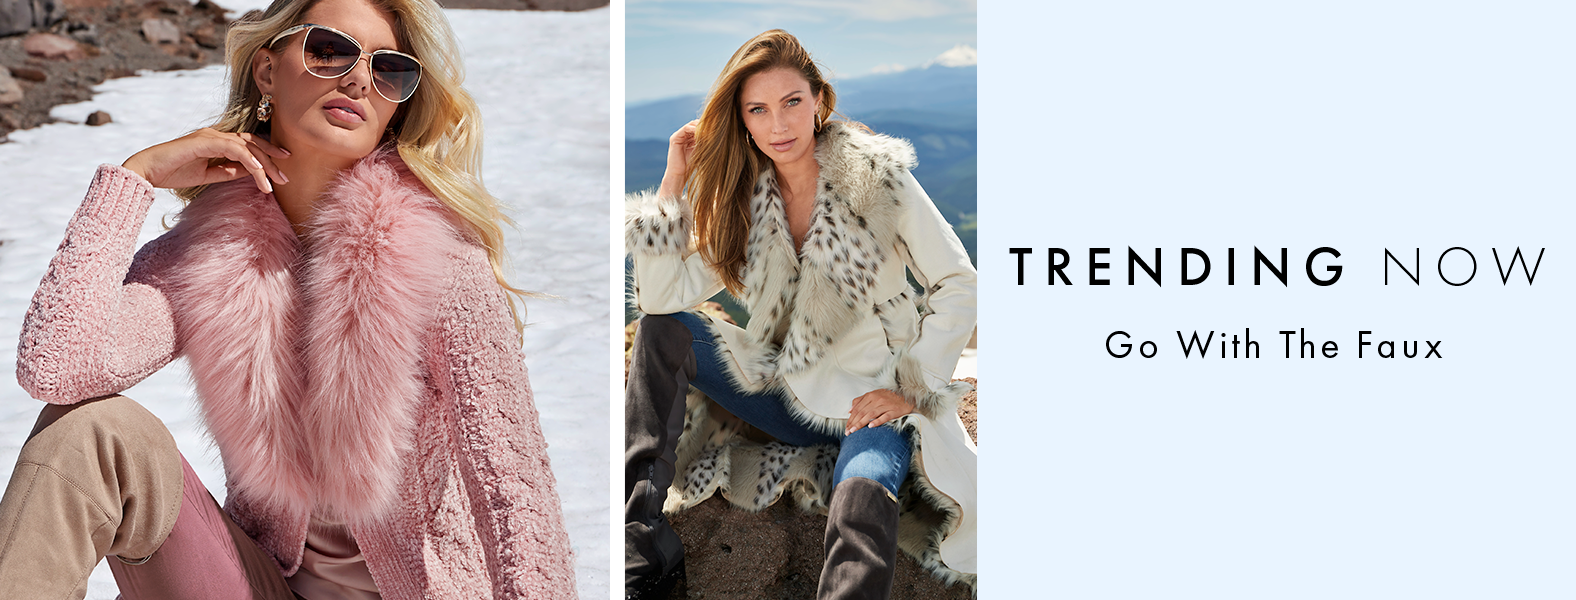 left model wearing a pink faux-fur sweater coat, pale pink top, pink velvet pants, beige over-the-knee boots, and sunglasses. right model wearing a white faux-fur sweater coat, jeans, and over-the-knee boots. text: trending now. go with the faux.